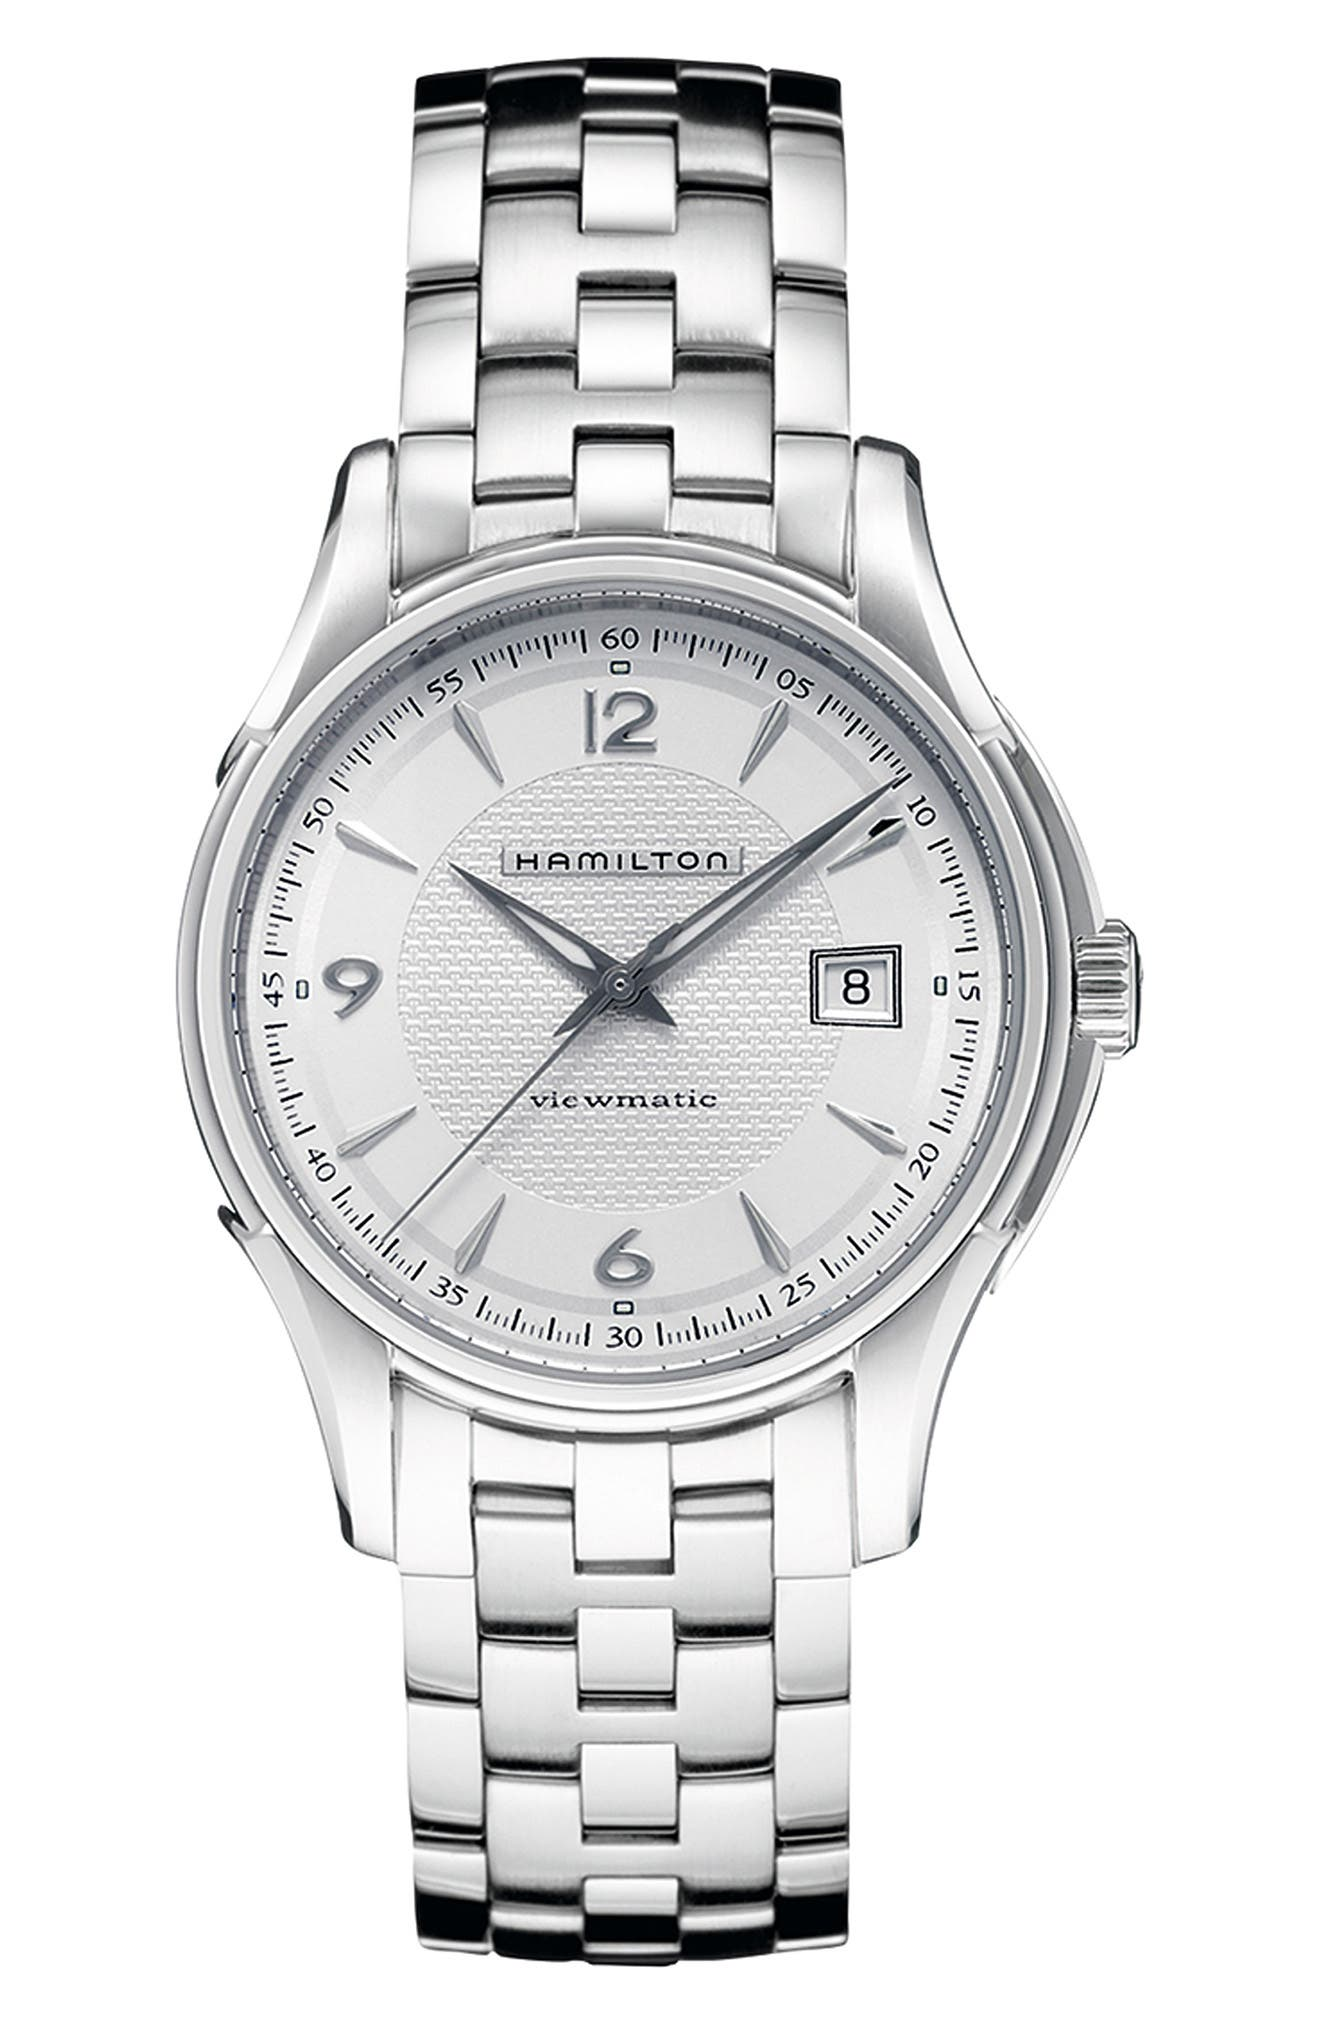 HAMILTON Jazzmaster Viewmatic Auto Bracelet Watch, 40Mm in Silver